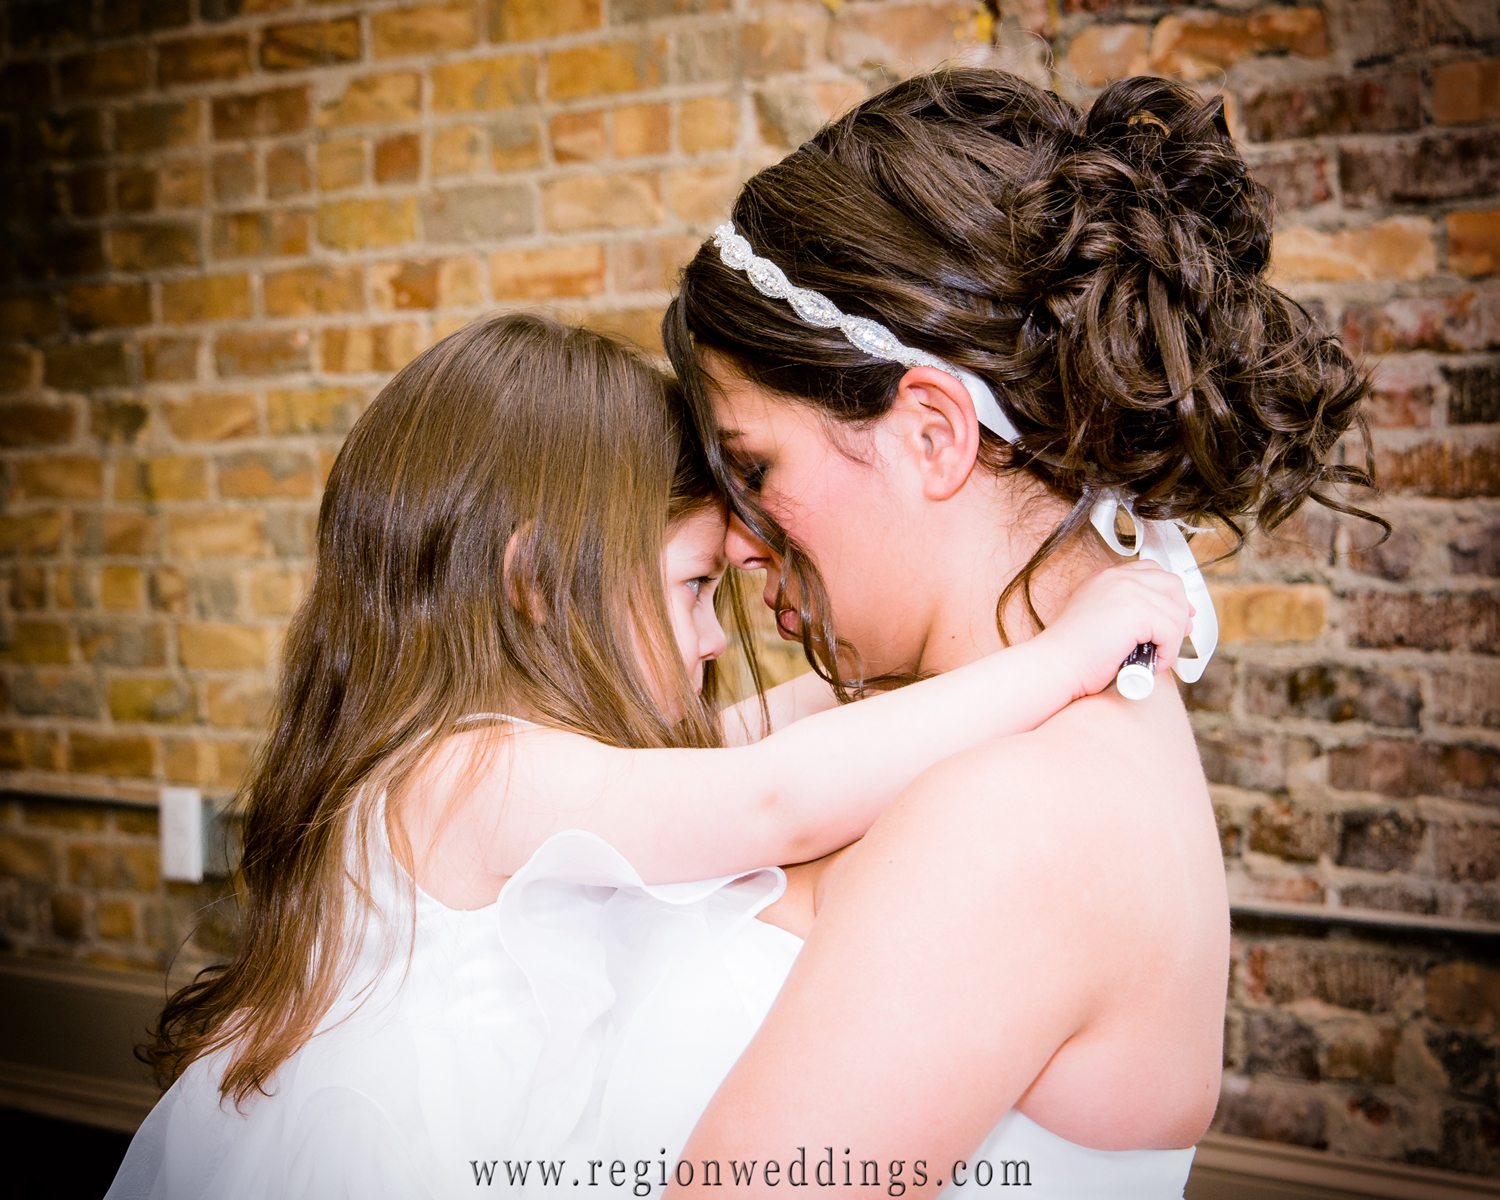 The flower girl gives her mom, the bride, a hug just before her wedding at The Allure in LaPorte, Indiana.